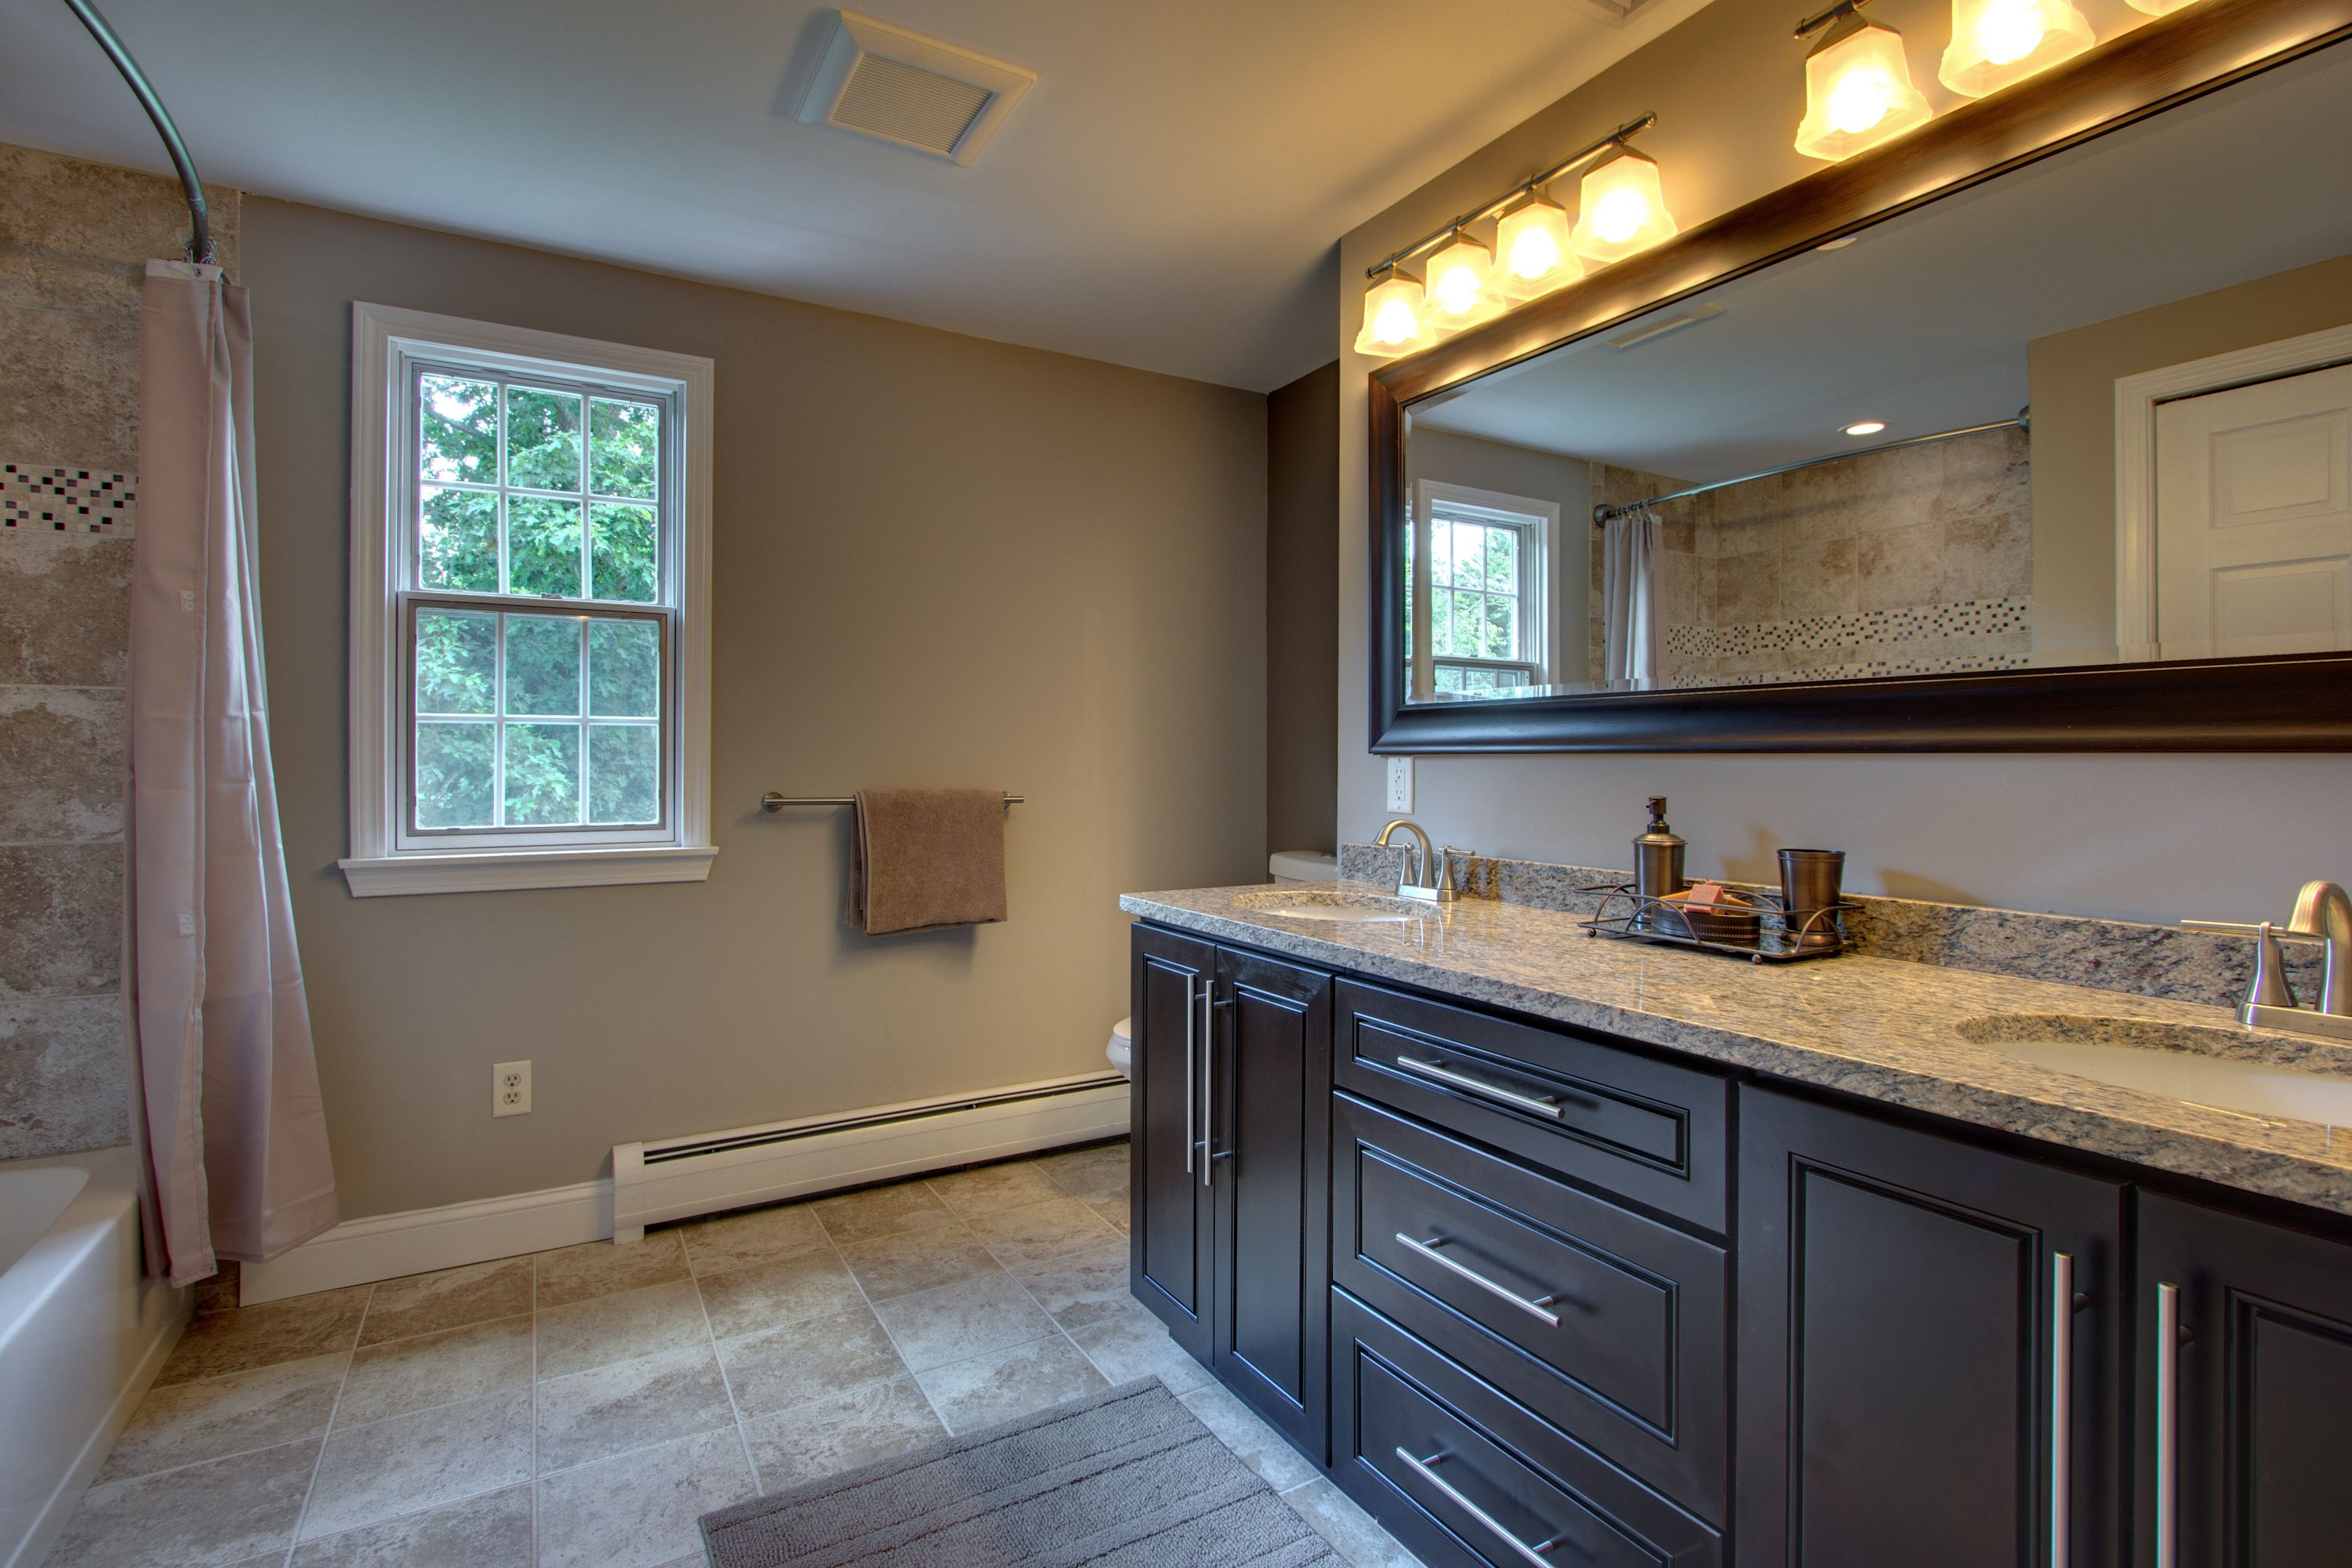 Check Out Our Other Beautiful Bathroom Vanities At Www Jkboston Com Diy Bathroom Beautiful Bathroom Vanity Diy Kitchen Projects [ 2000 x 3000 Pixel ]